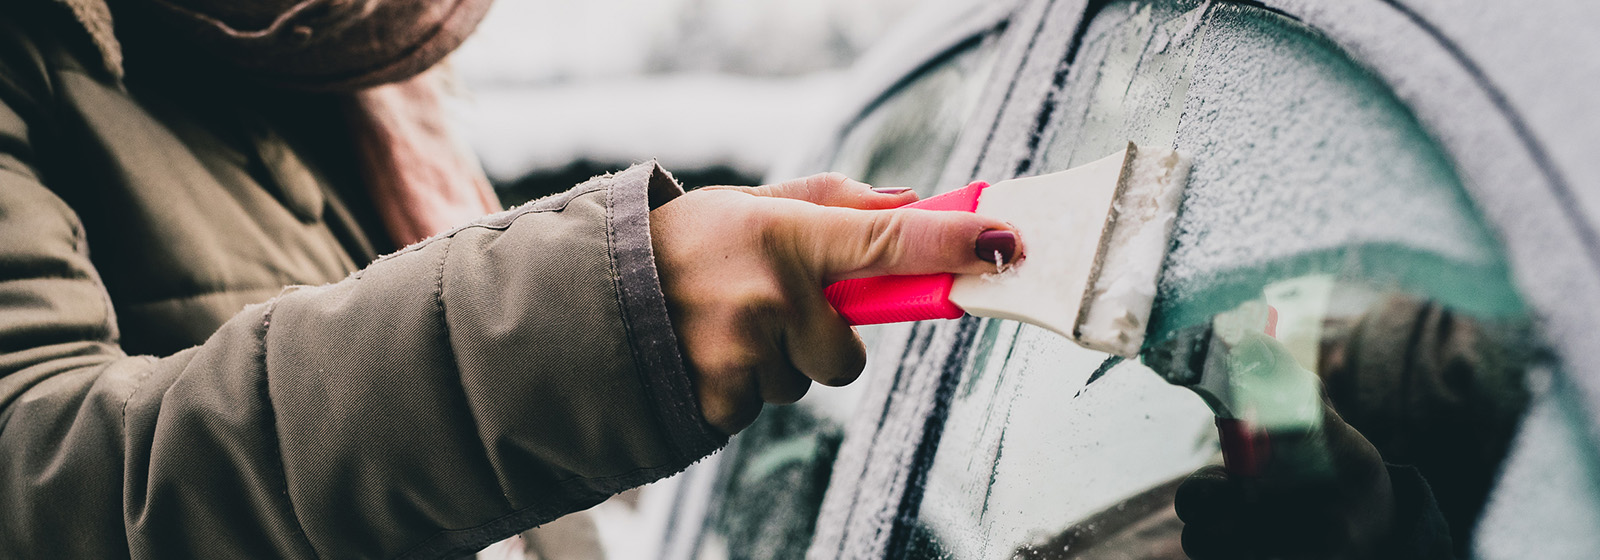 woman scraping ice off of car window